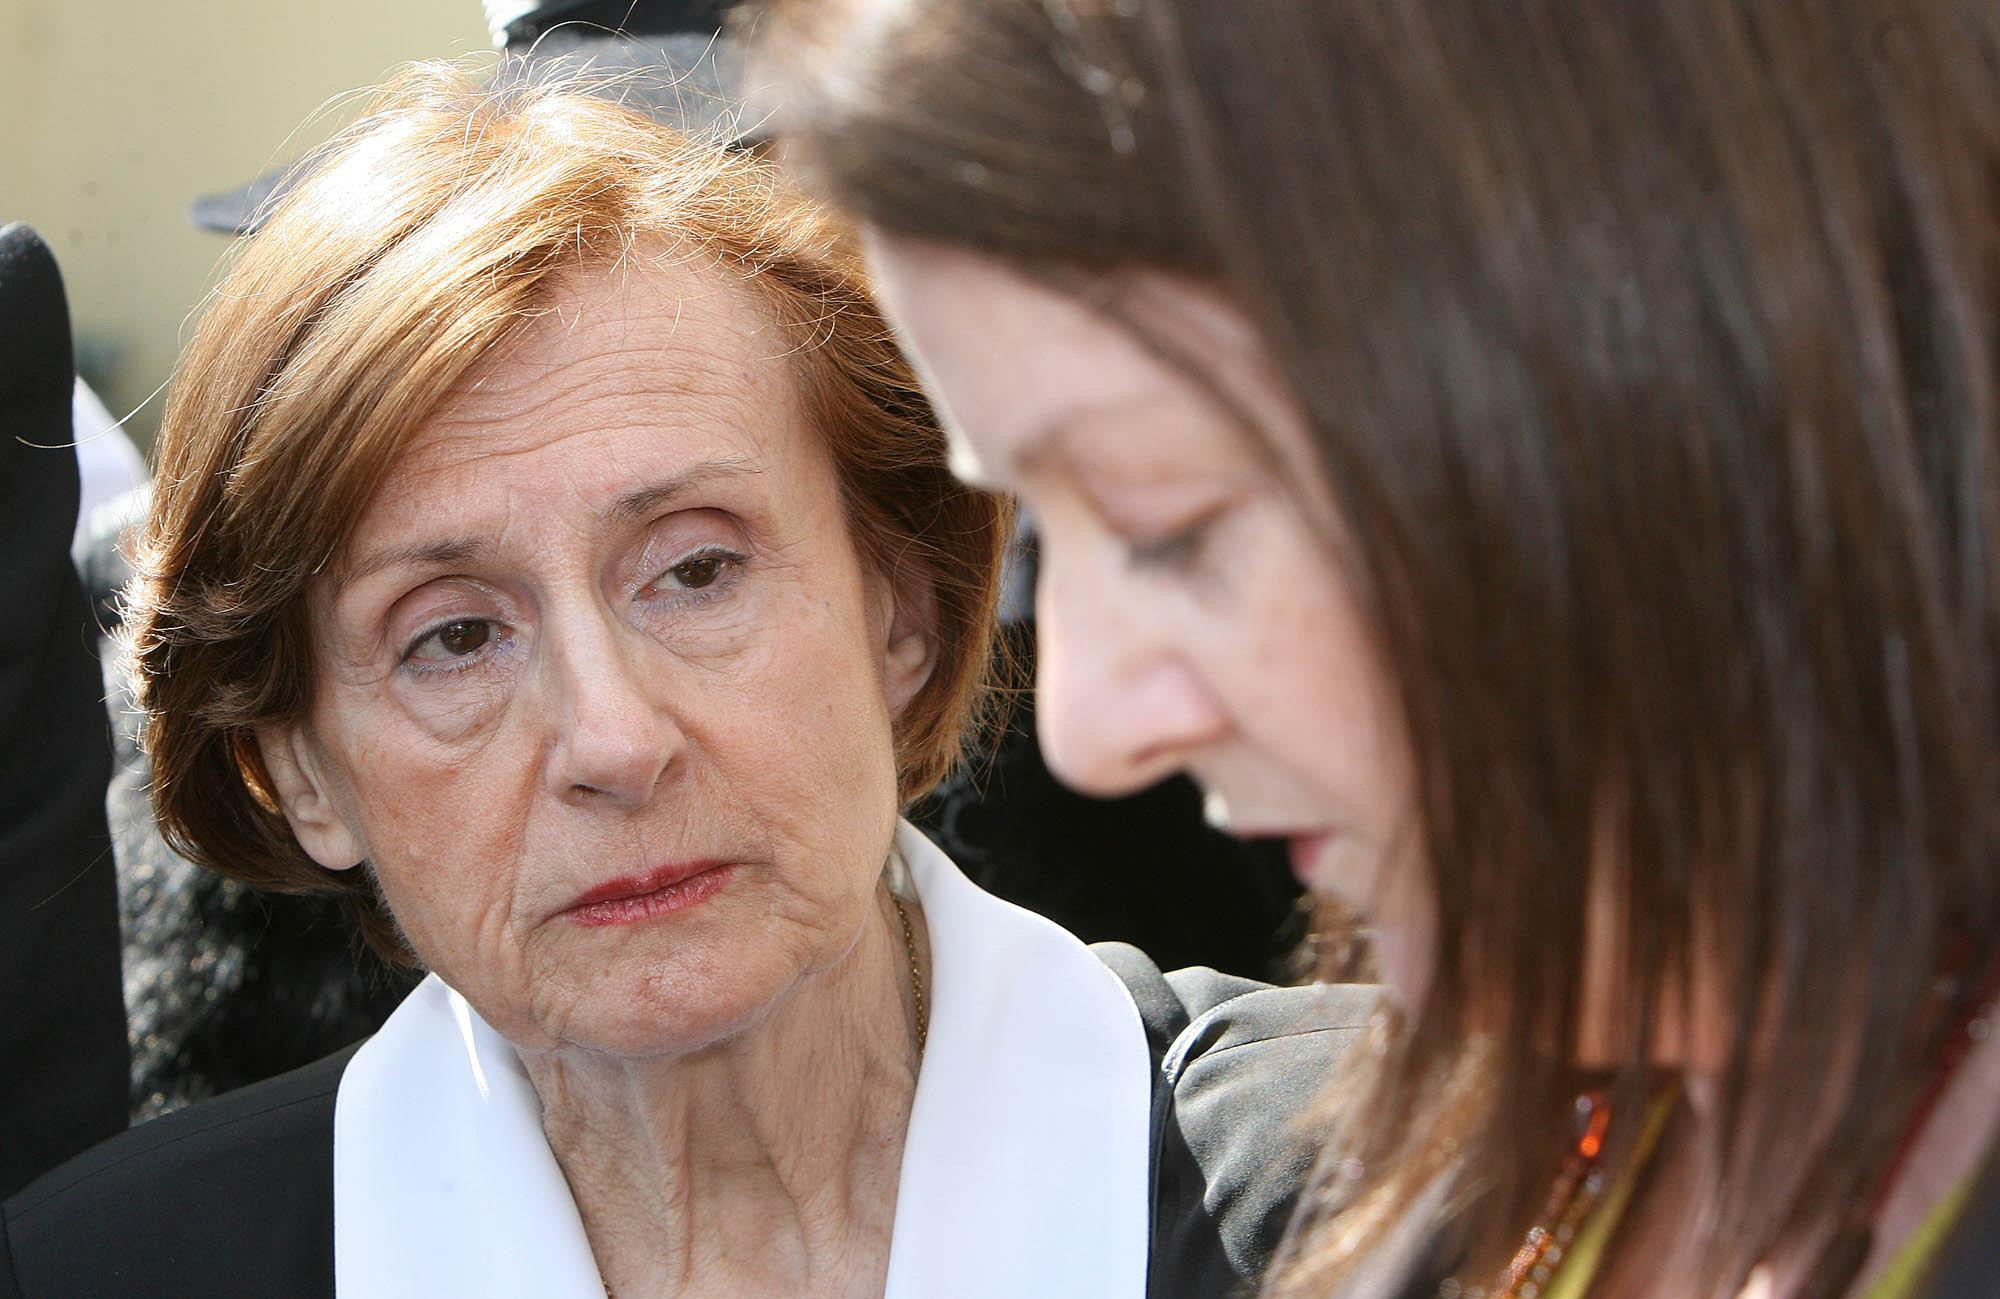 Marguerite Bouniol, mother of Sophie Toscan du Plantier, listens to the prayers of Anne Delcassian - sister of Dundalk woman Irene White - during a special vigil to remember more than 120 women killed violently in Ireland in April 2007.